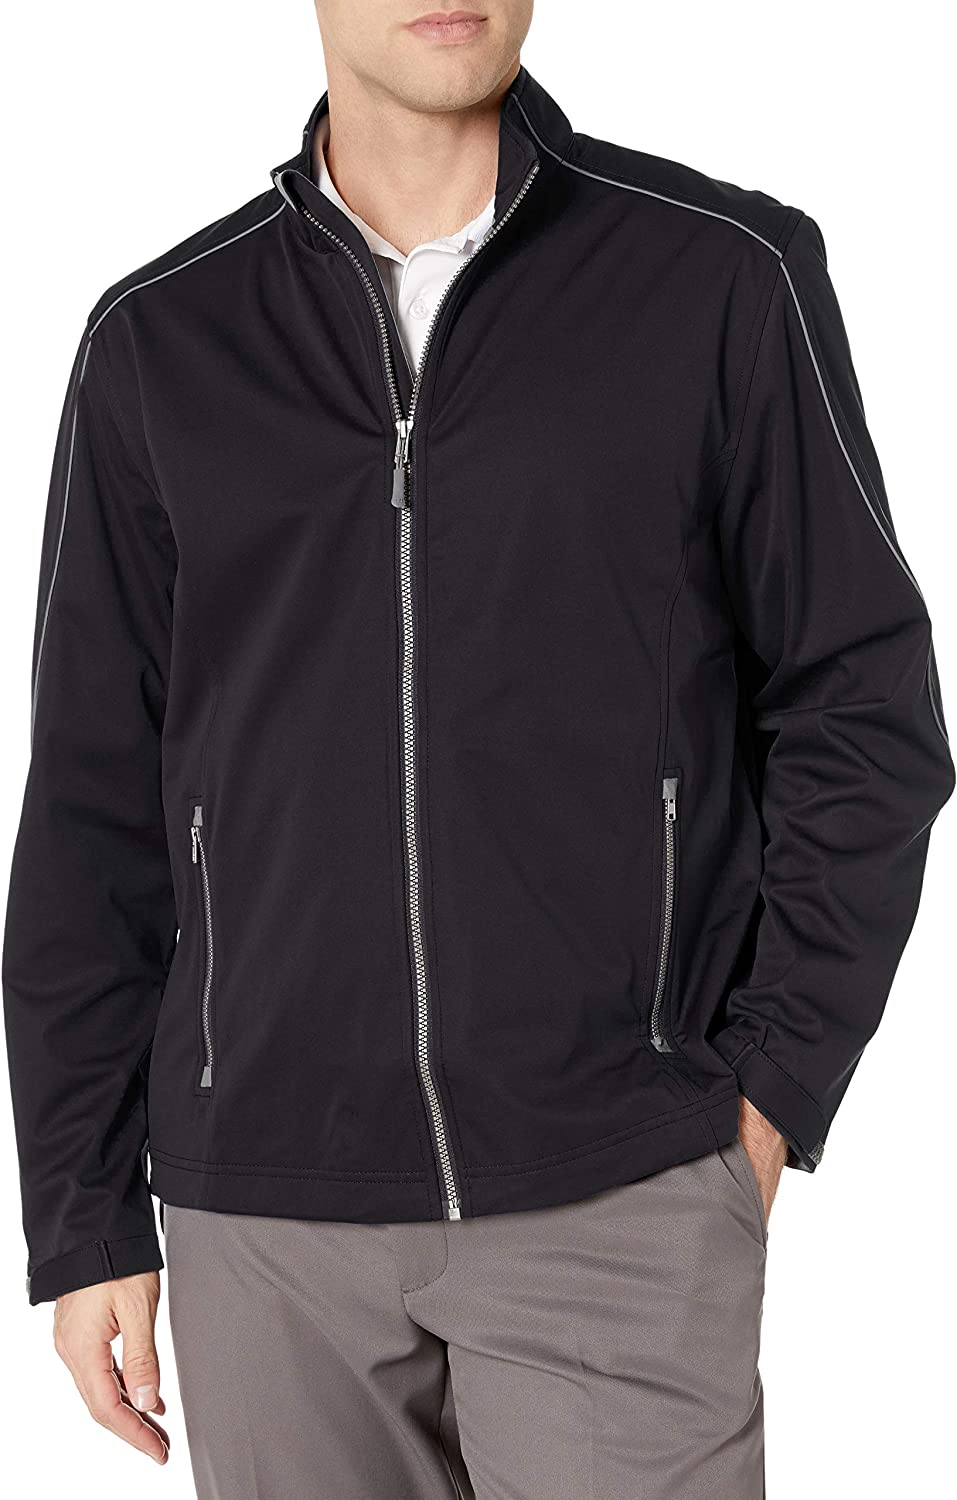 Cutter & Buck Men's Weather Resistant, Midweight Softshell Opening Day Jacket